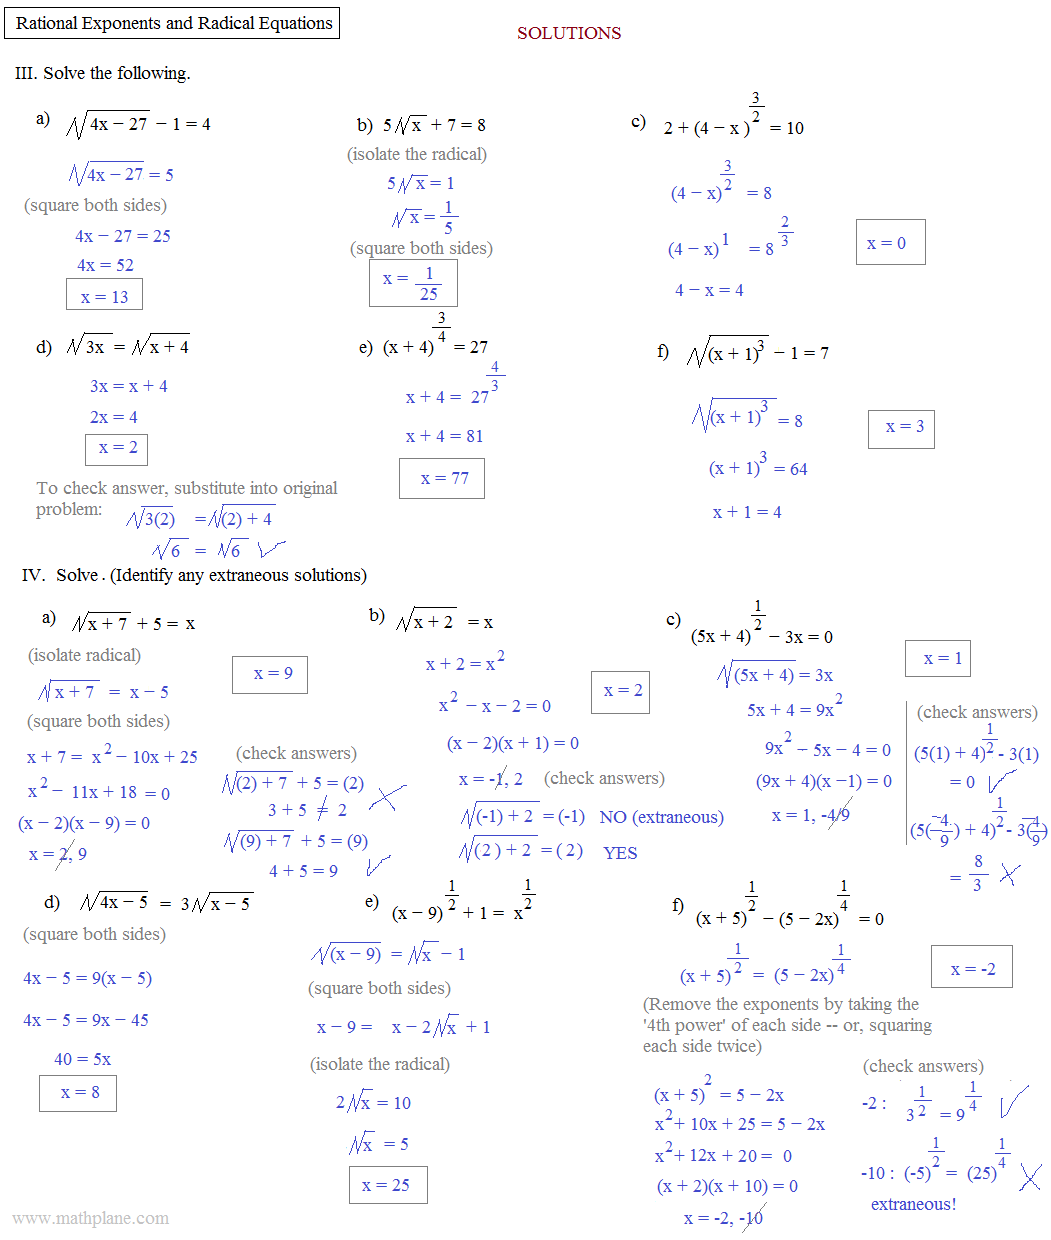 Printables Rational Exponent Worksheet math plane rational exponents and radical equations exercise 2 solutions